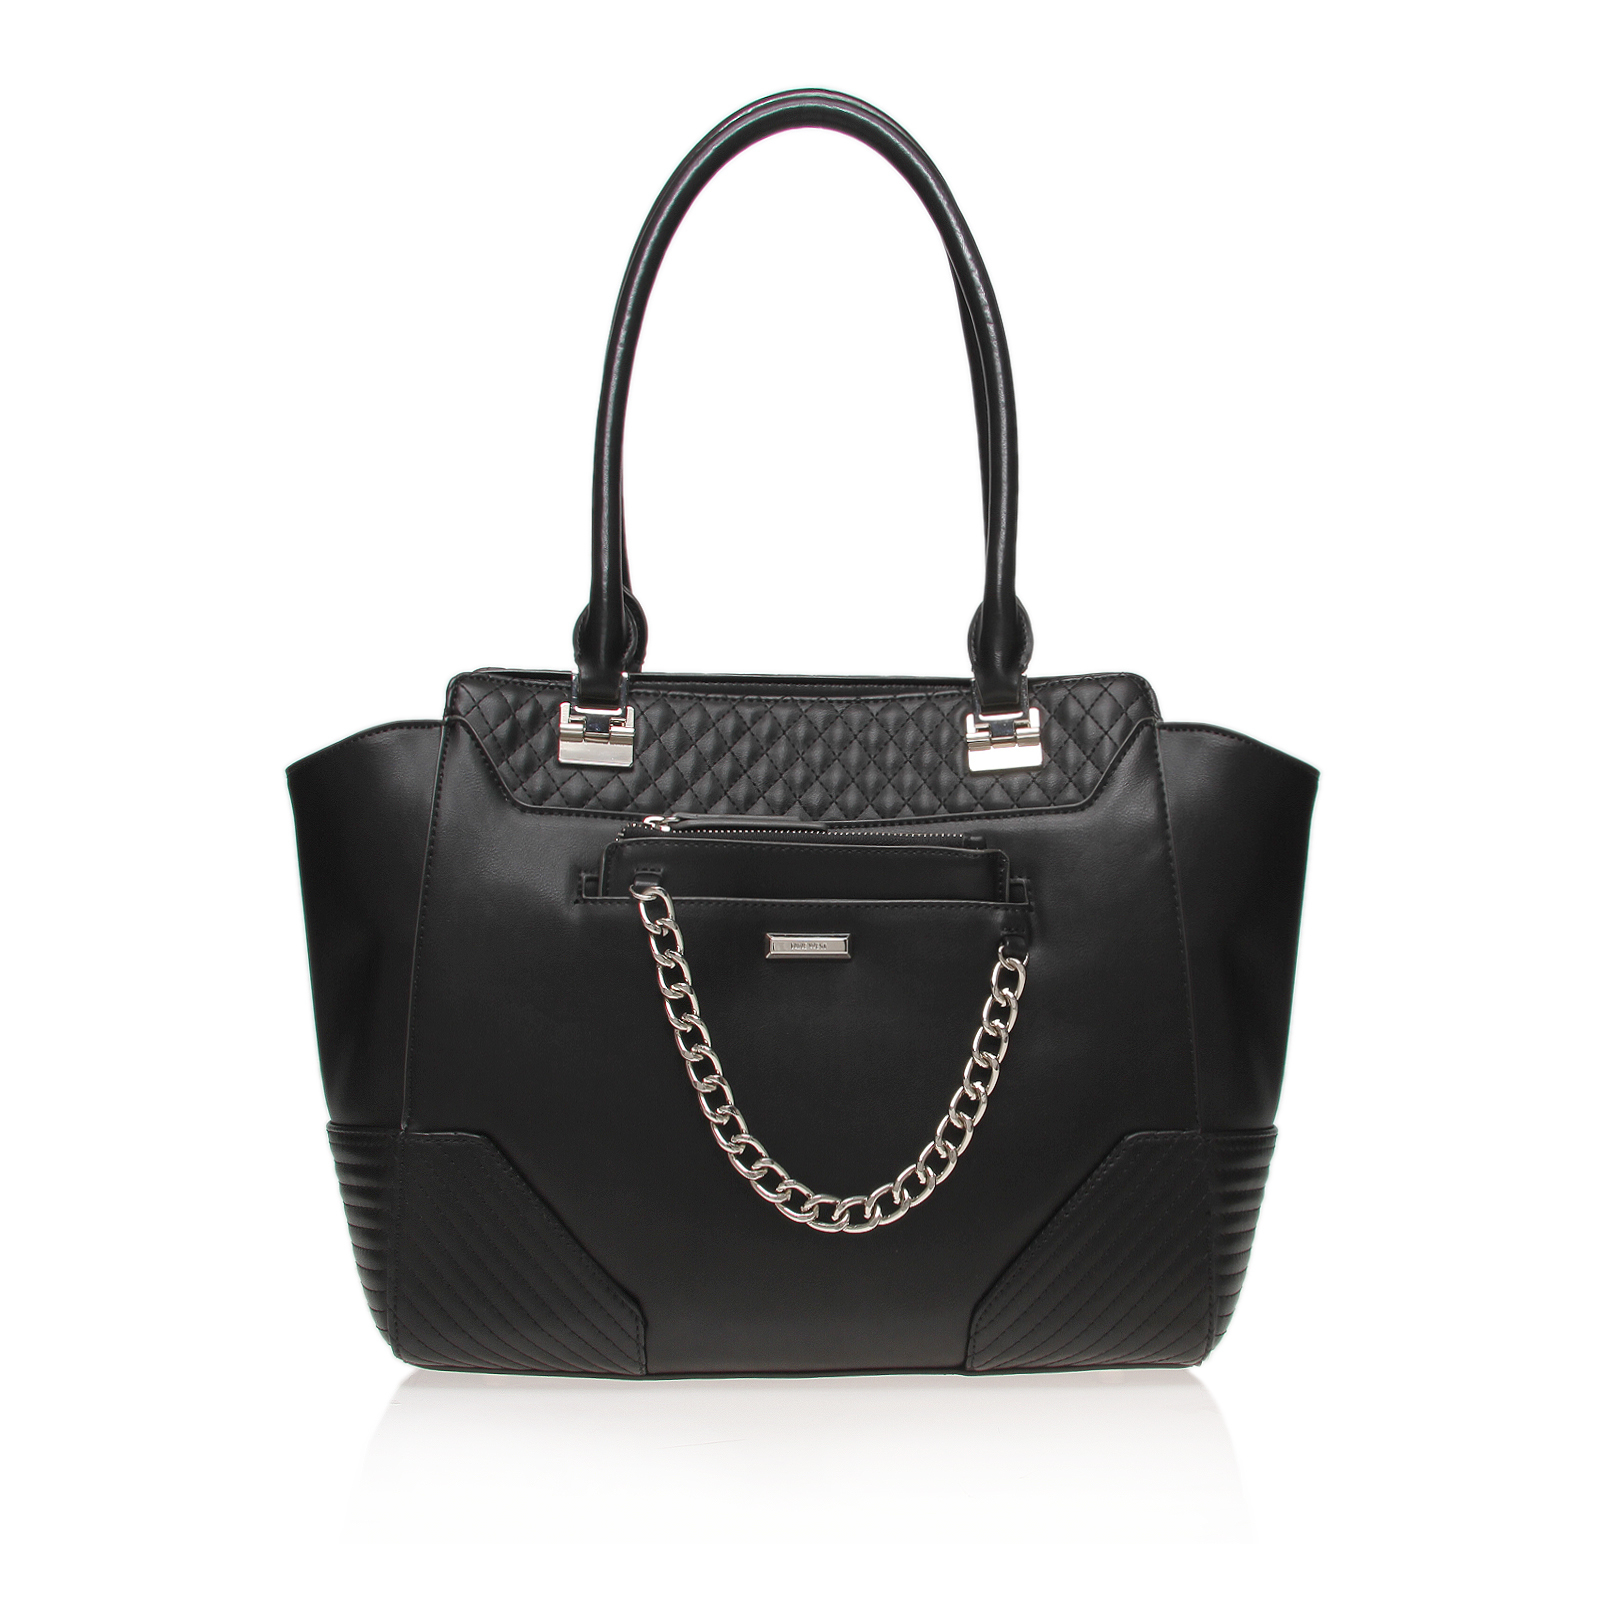 LINKED TOTE MD